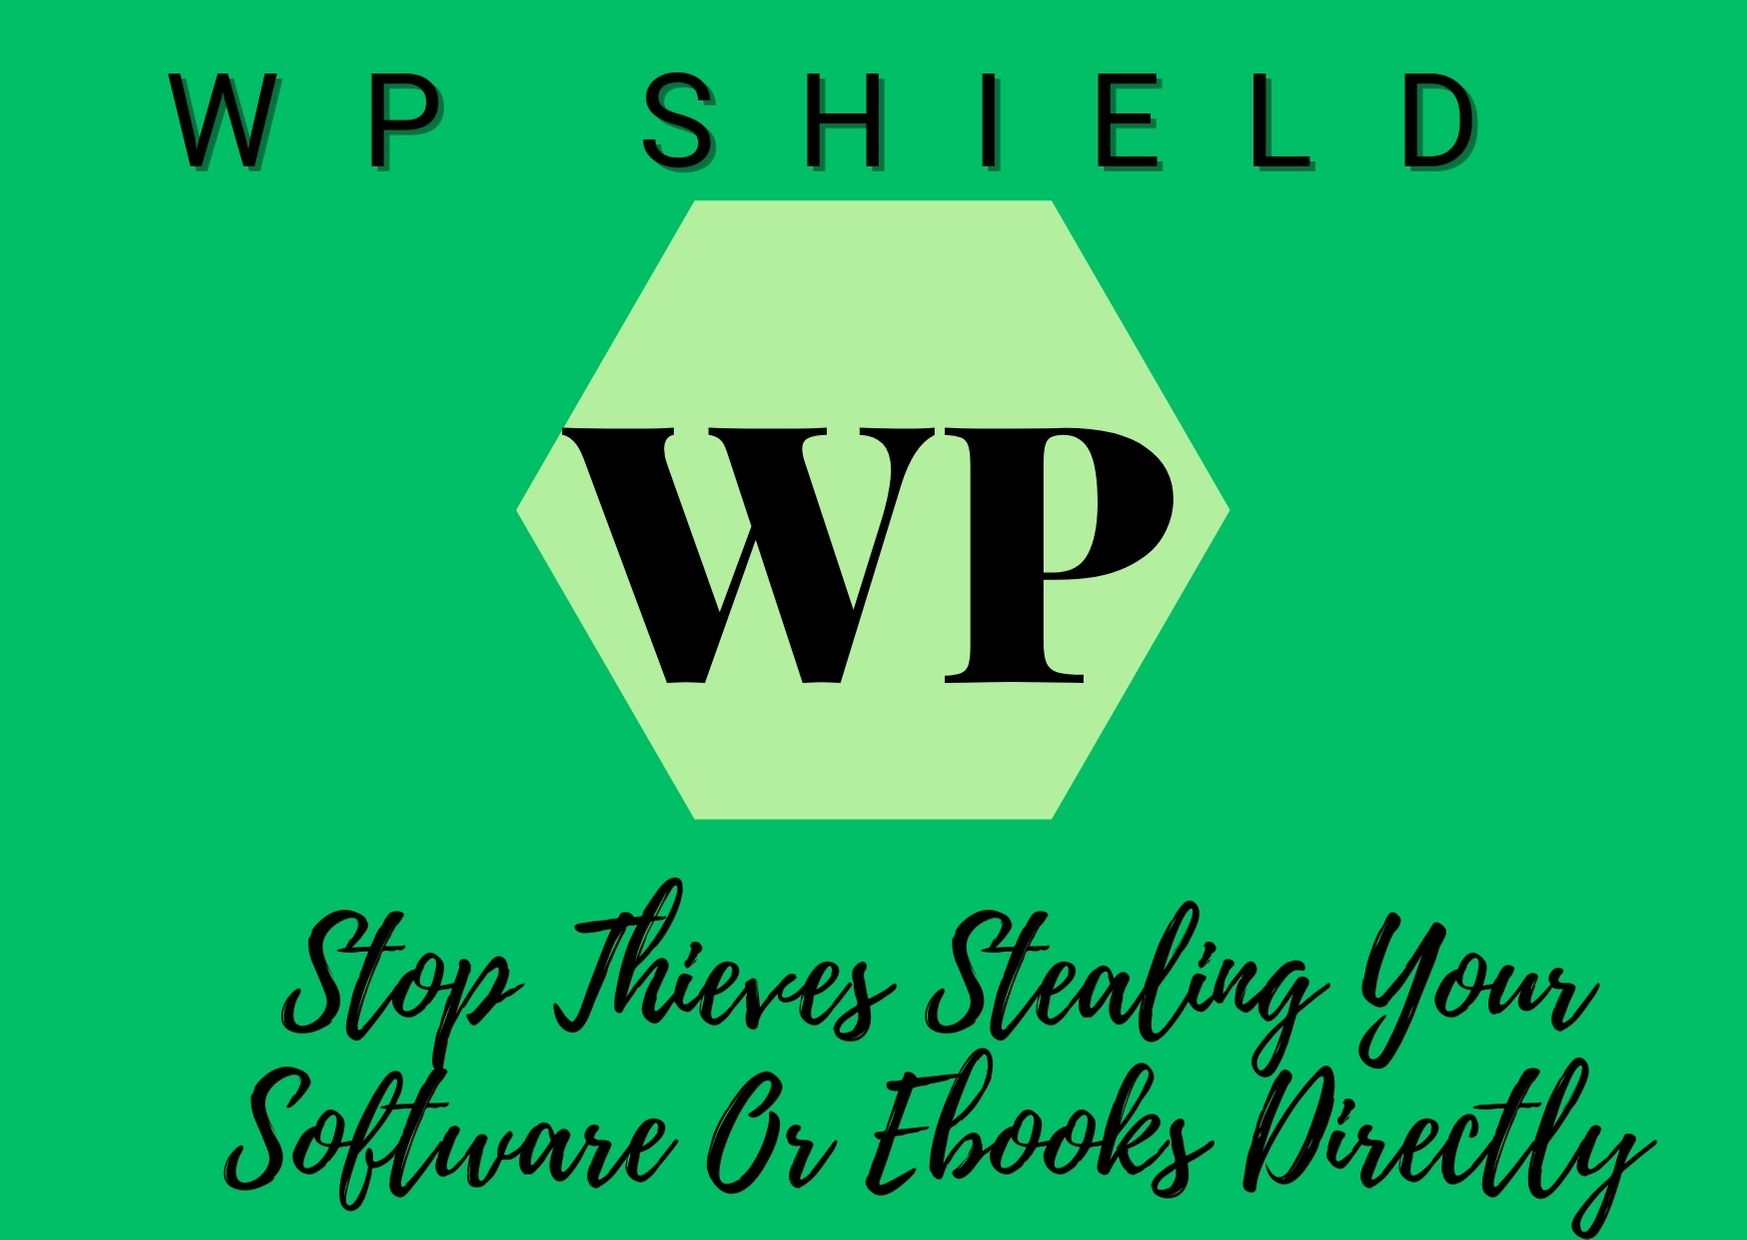 WP shield,  stop stealing software and e-books,  windows software